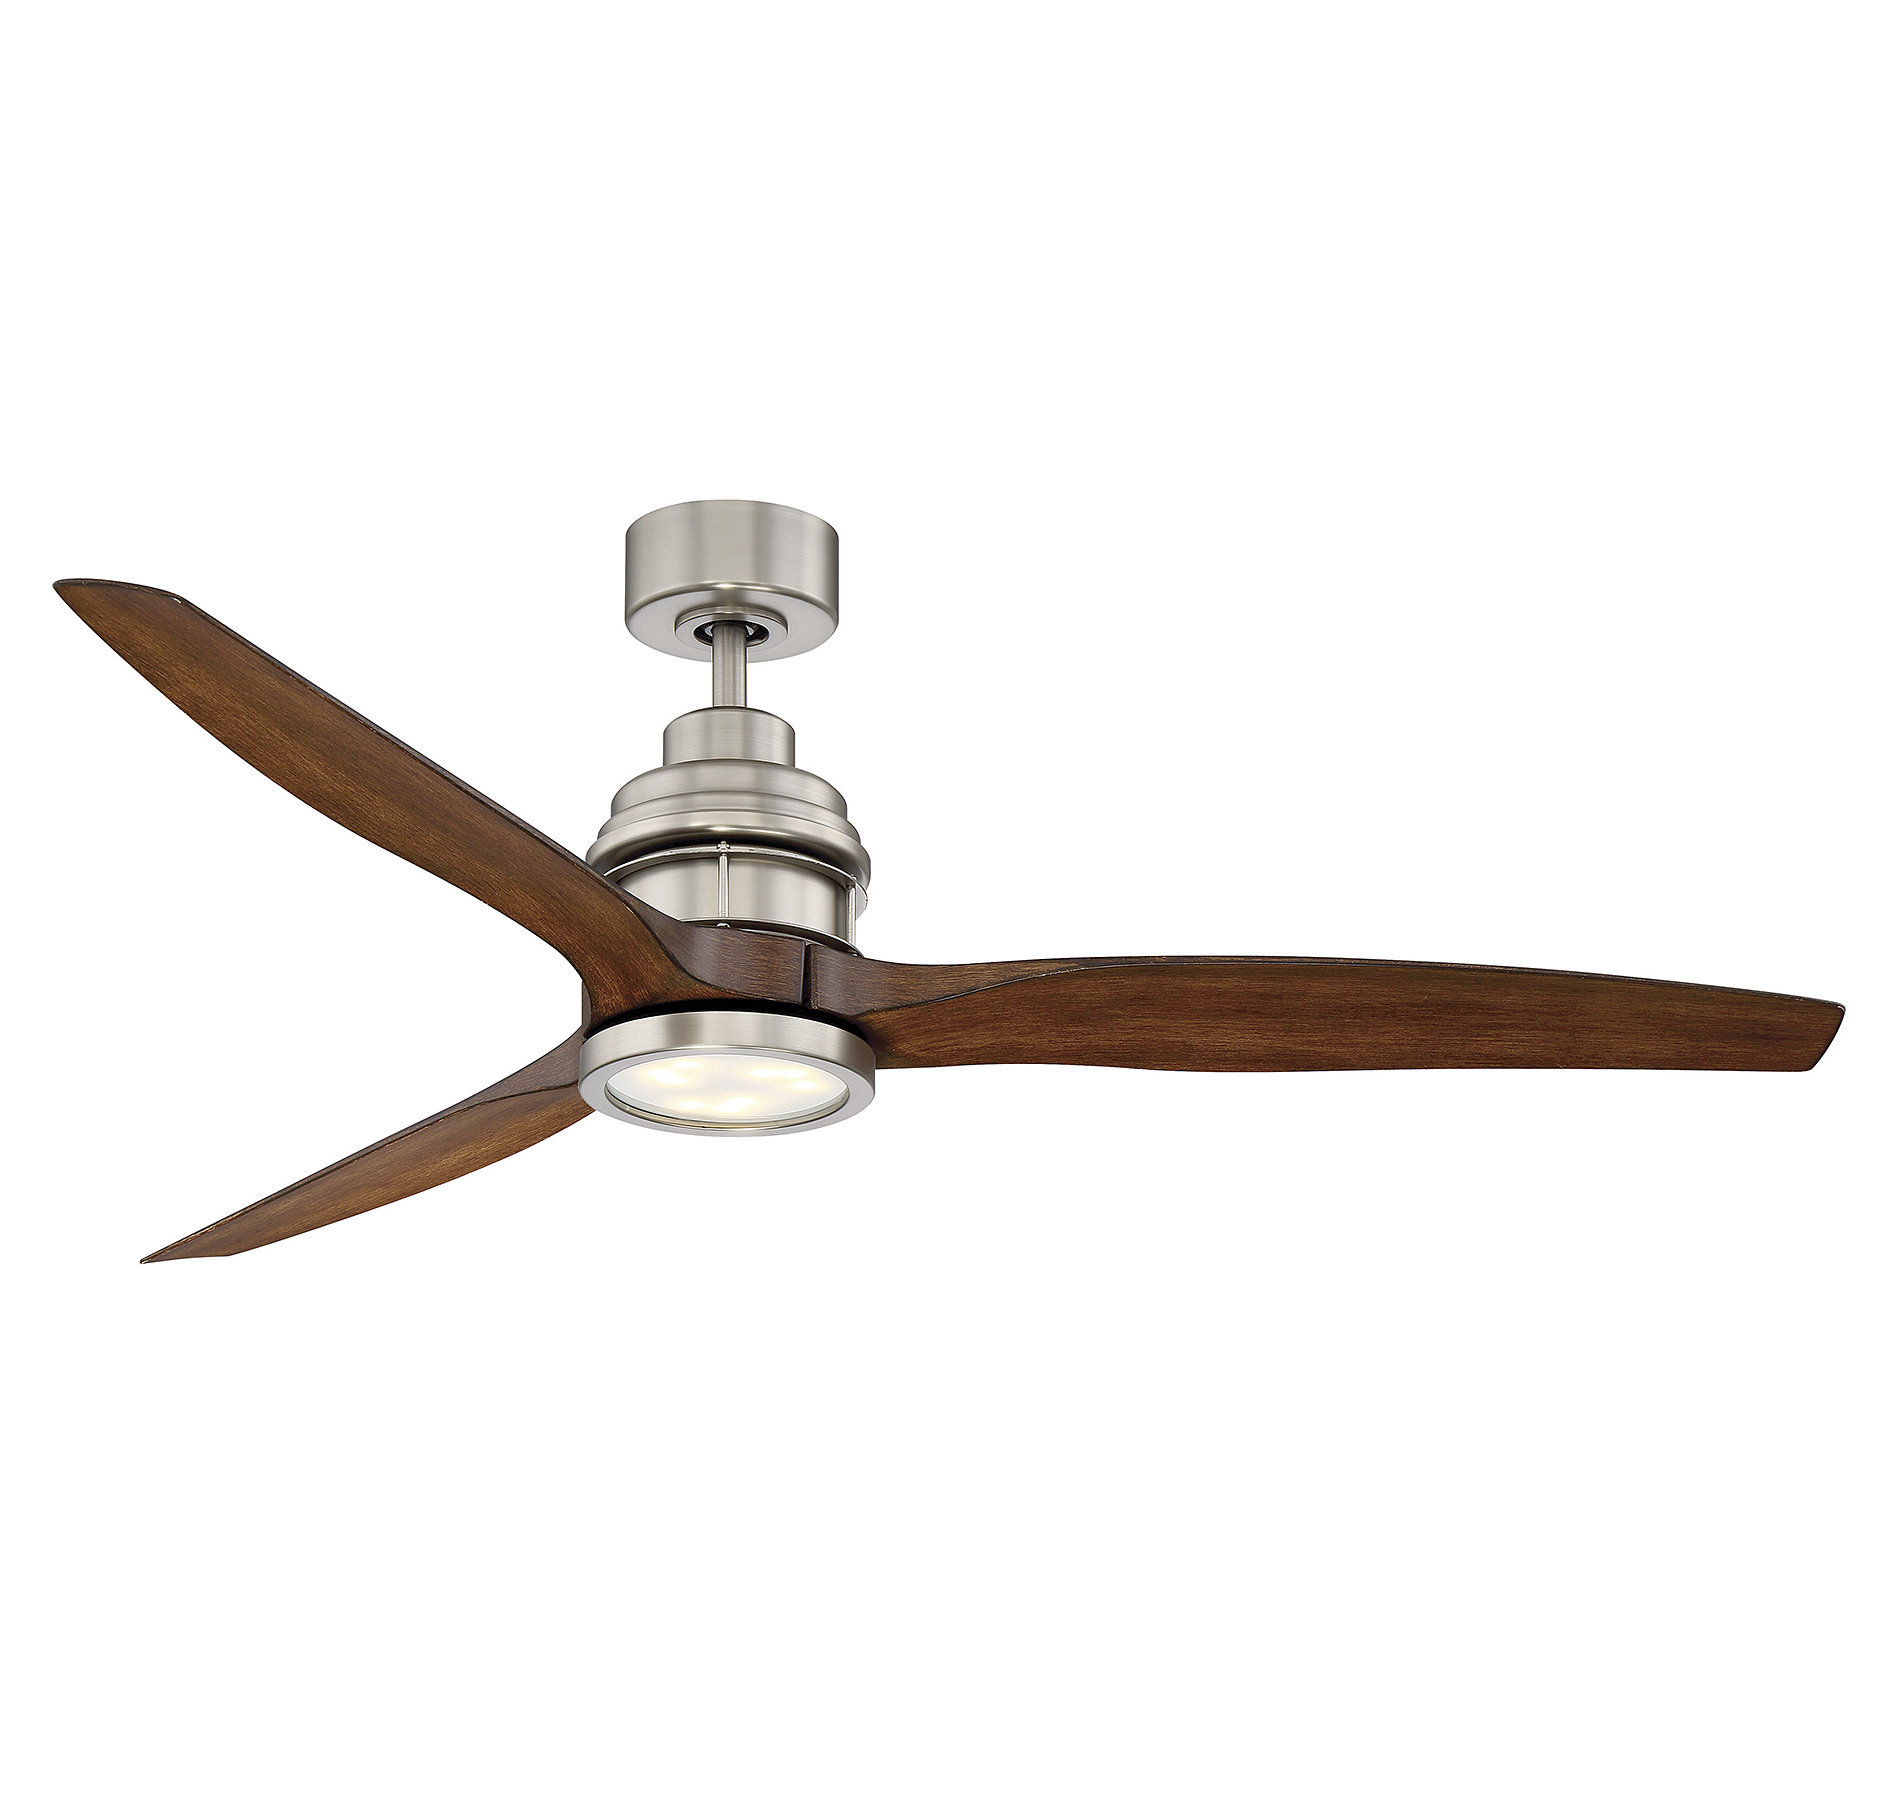 60 Harmoneyq 3 Blade Ceiling Fan With Remote Control Reviews pertaining to dimensions 1890 X 1805